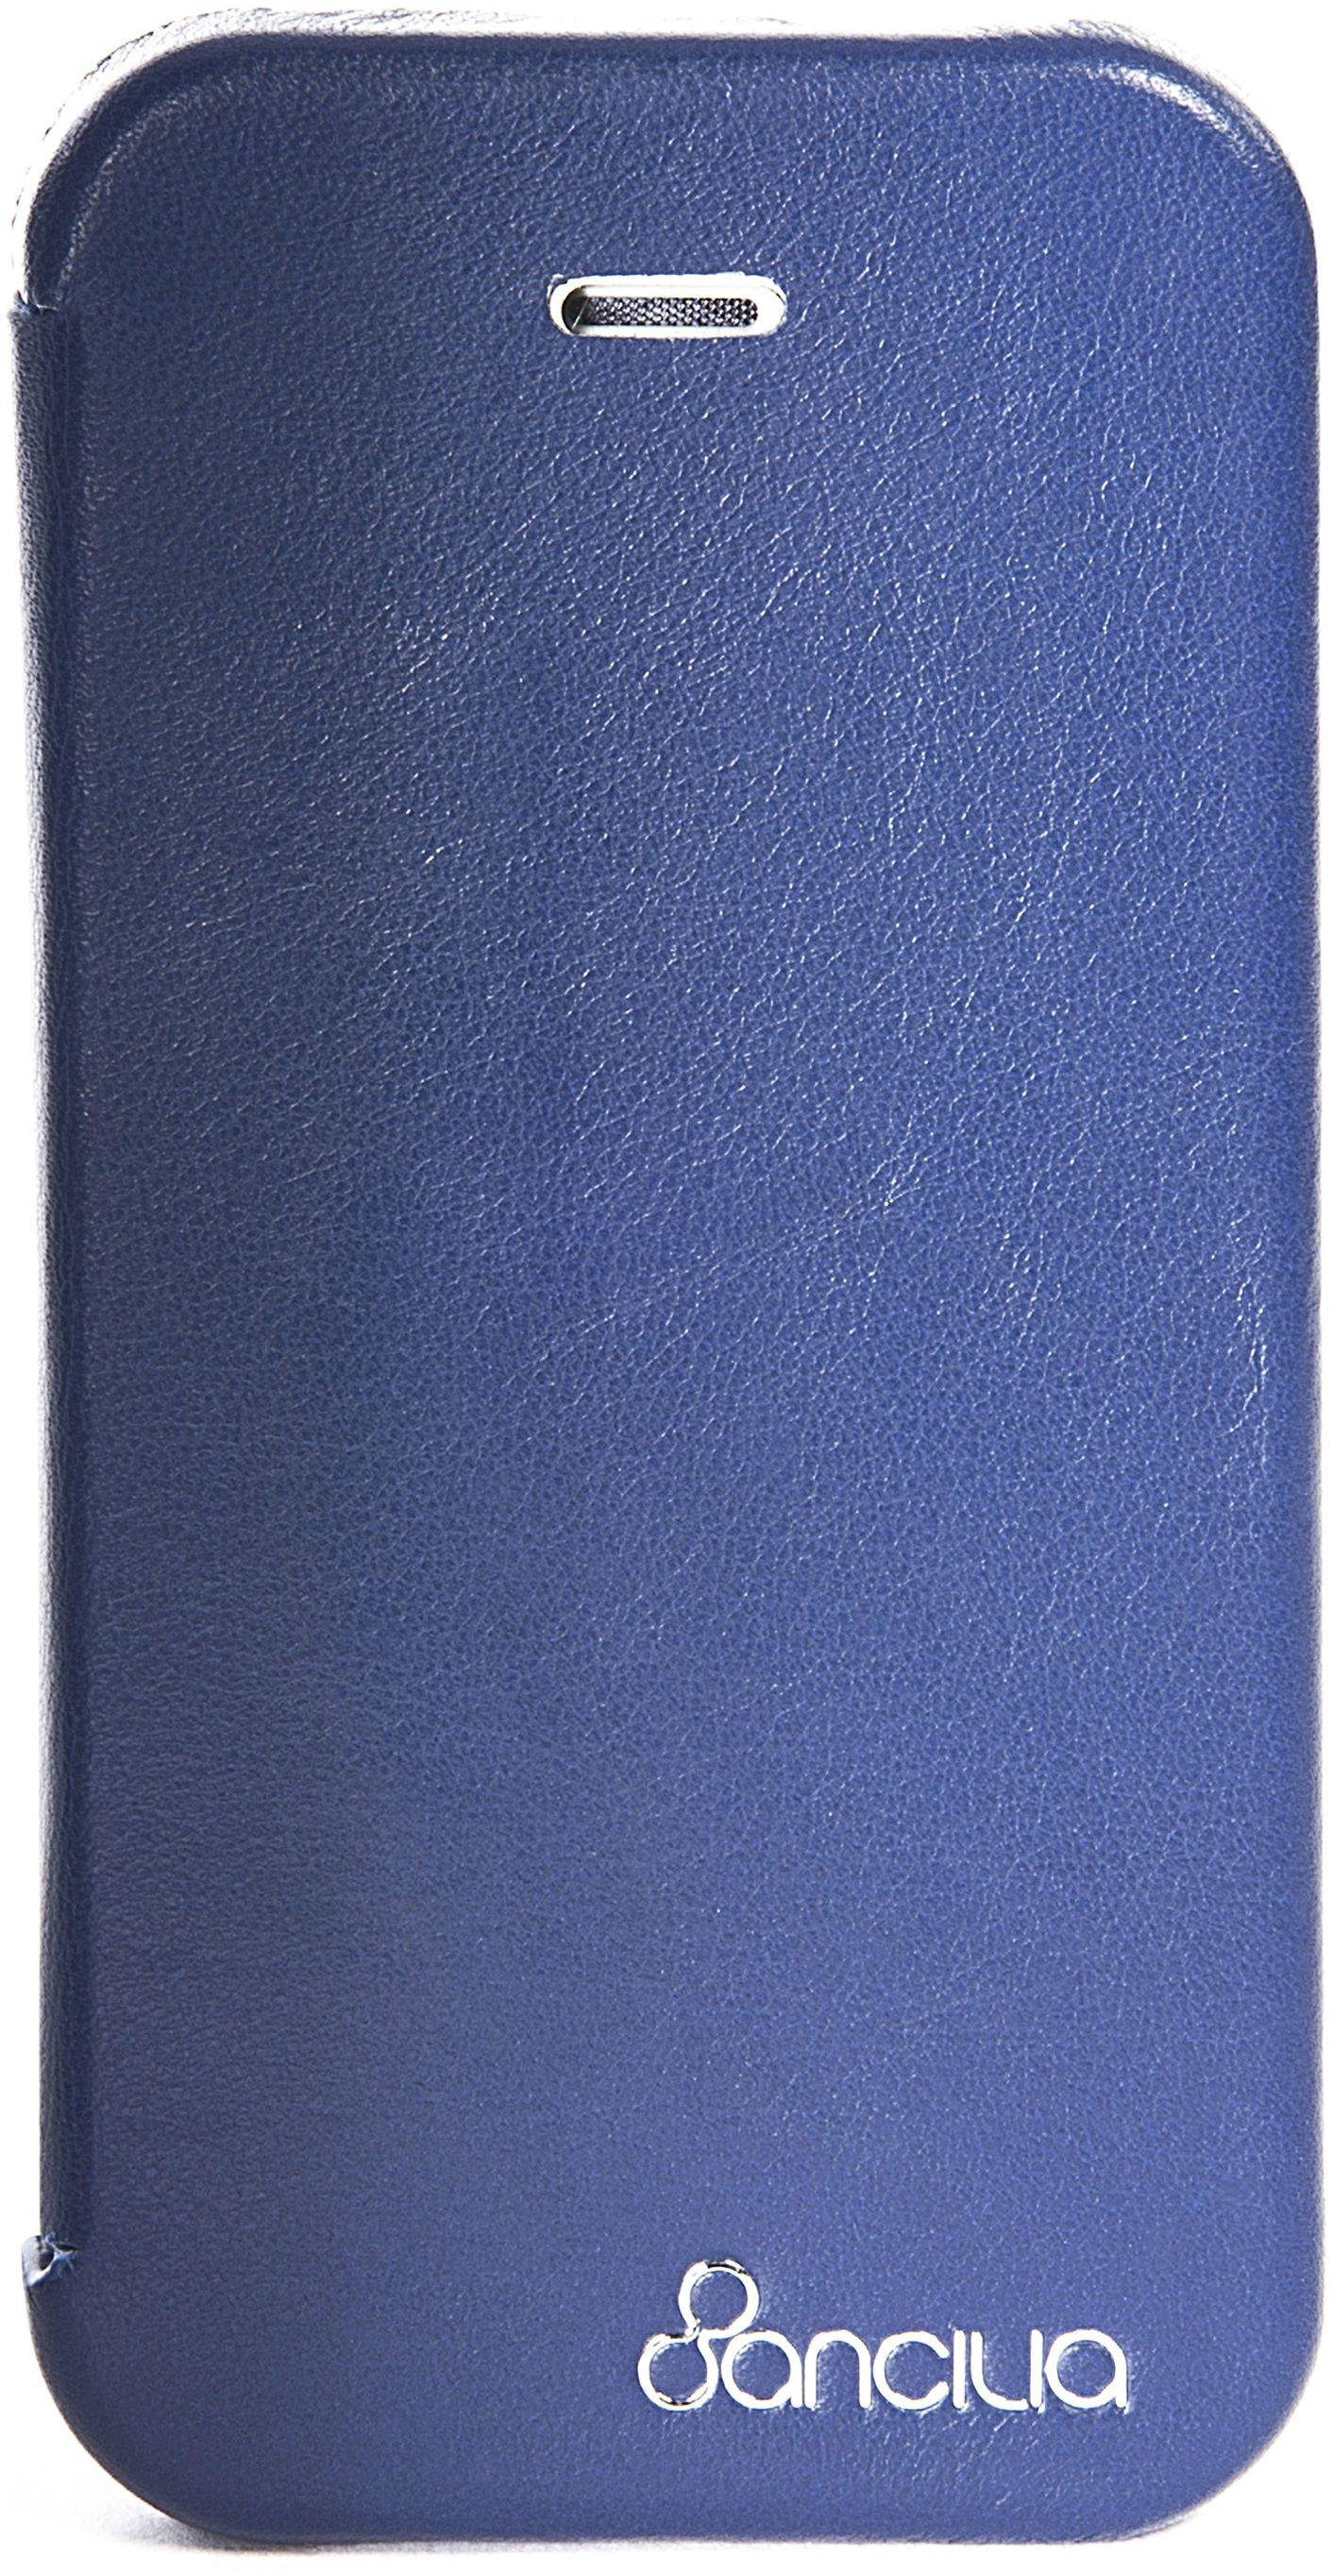 Image of Ancilia Anti Radiation iPhone 5/5S Booklet Case - Blue.